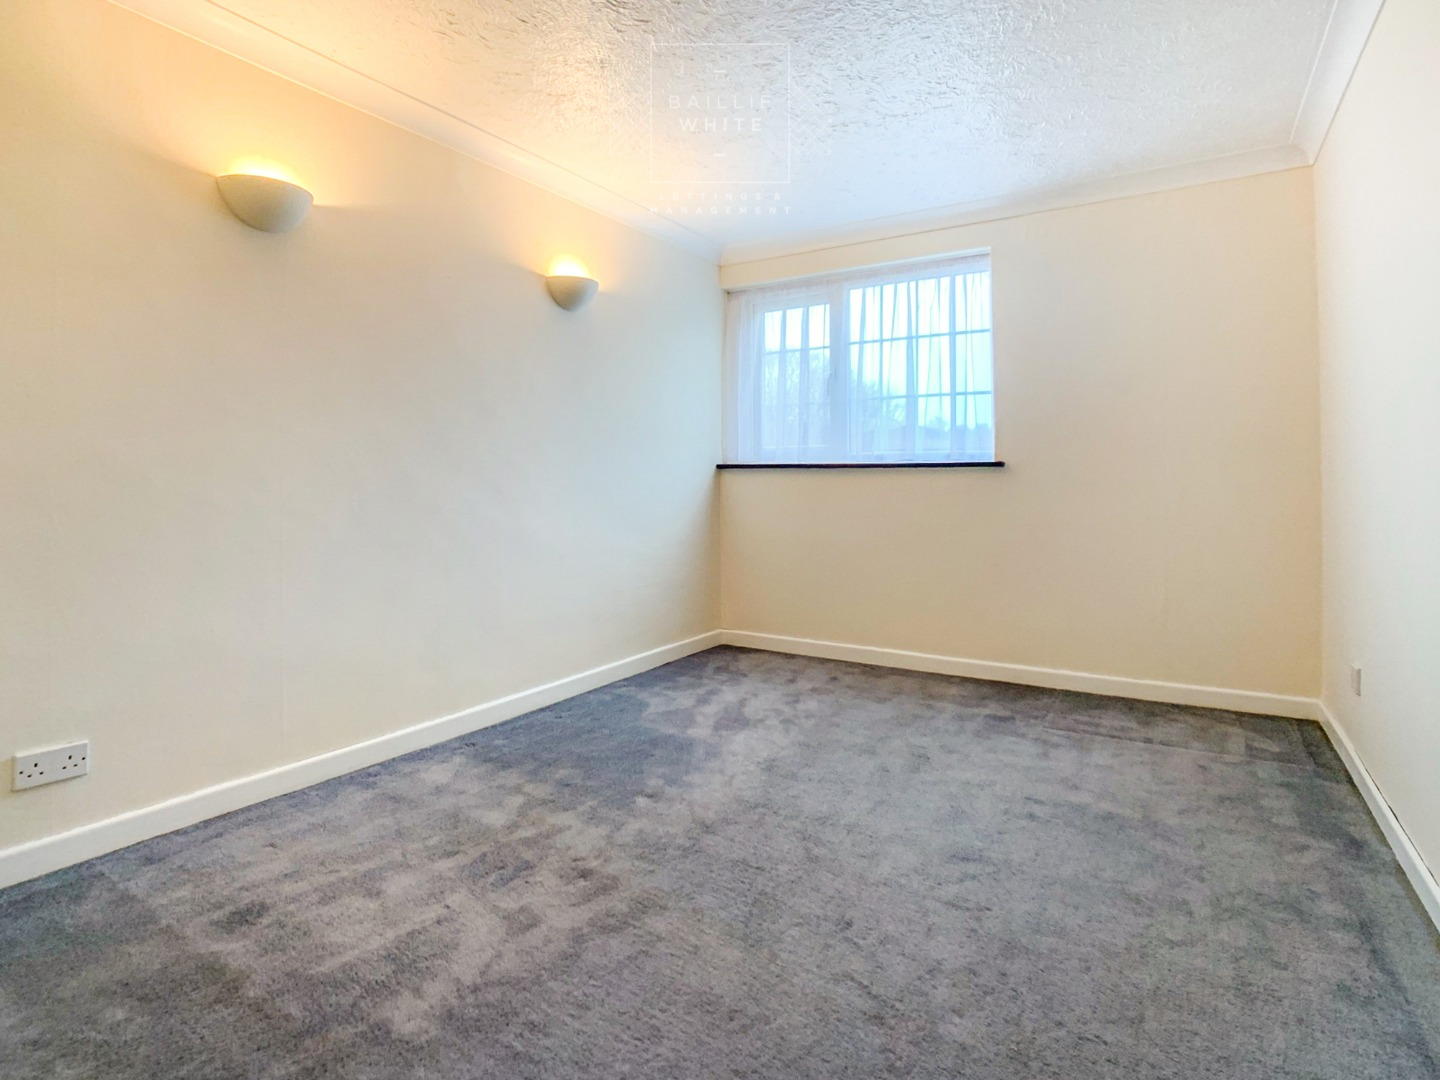 3 bed house to rent in Walthams, Pitsea 7